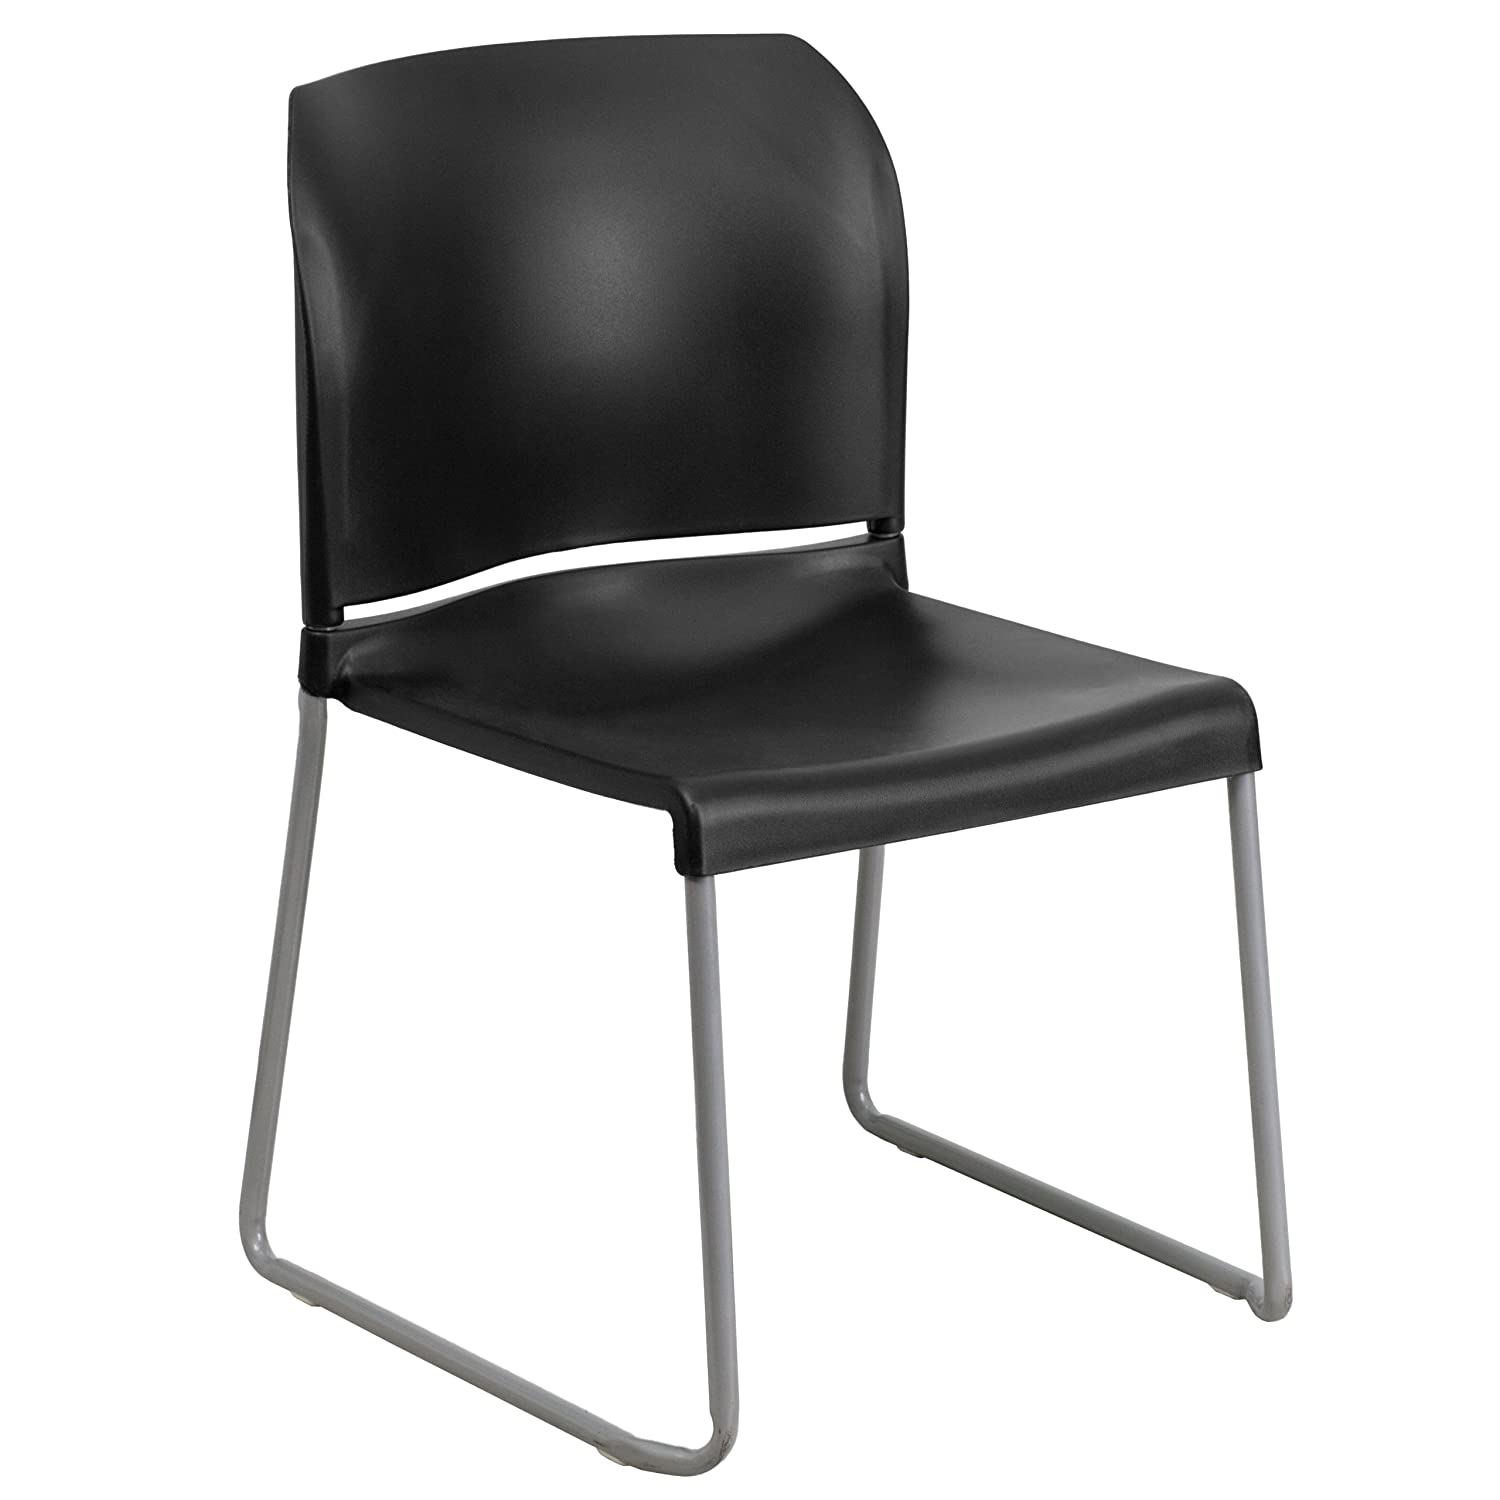 Stacking Chairs Amazoncom Office Furniture  Lighting -  black and white chairs